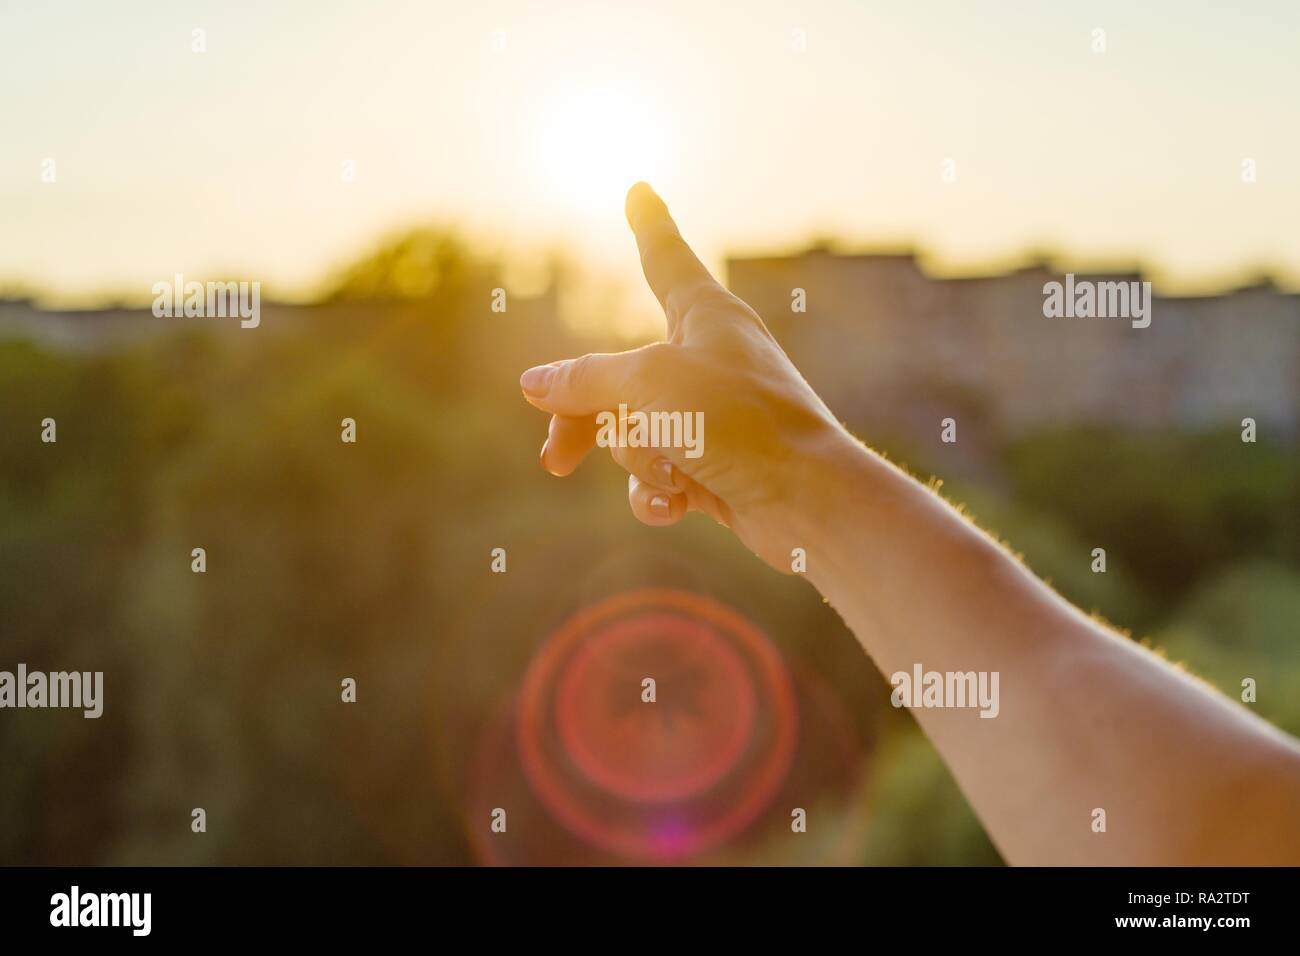 Gesture with the index finger towards the sunset. Background sky, silhouette of the city, sunset. - Stock Image